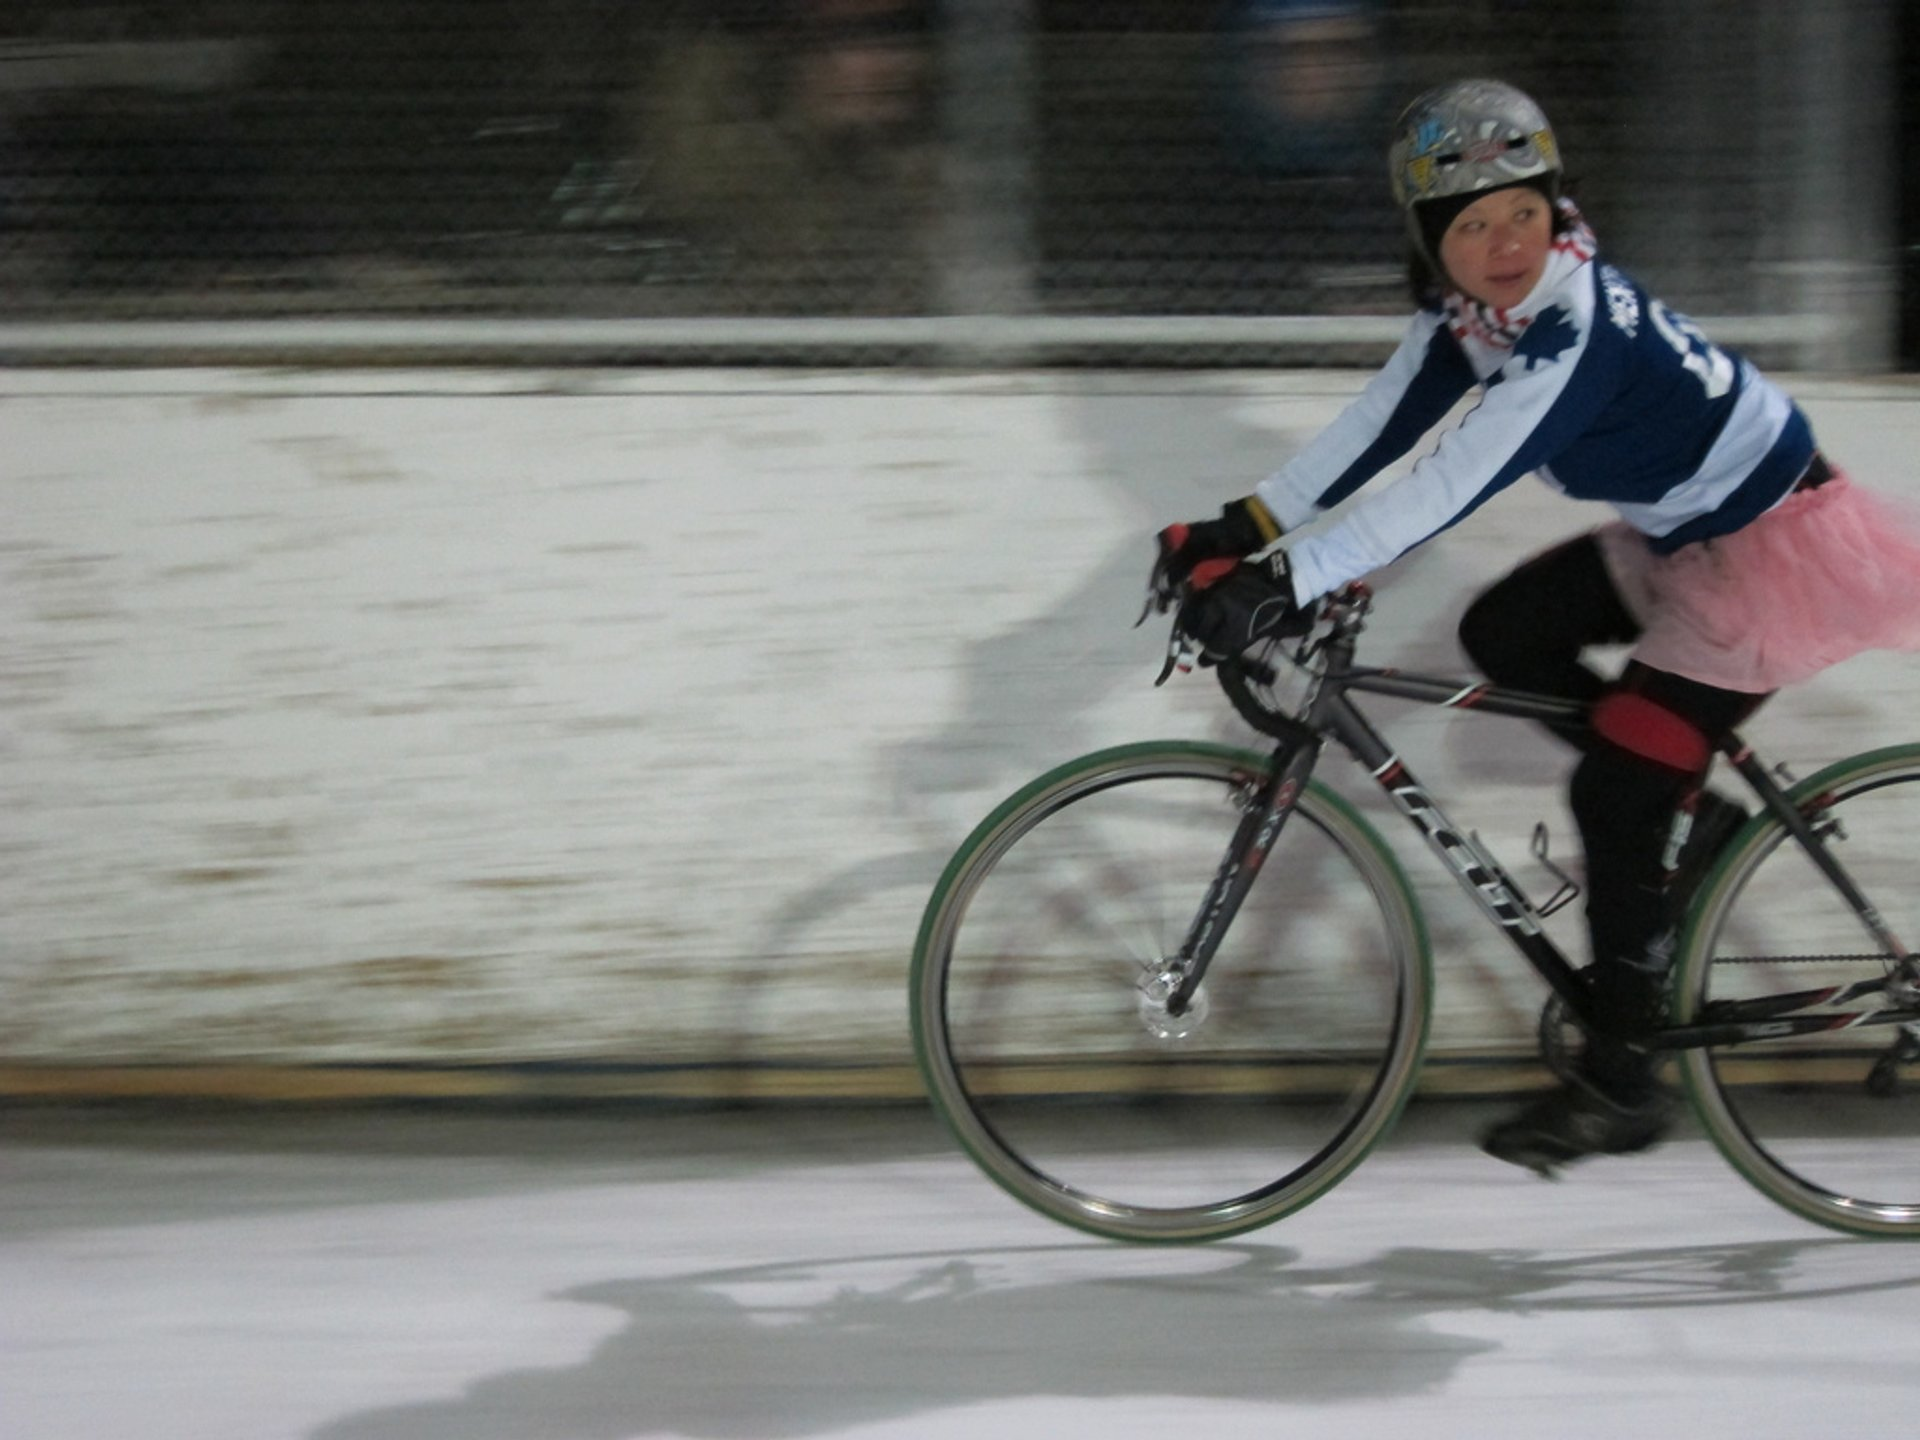 Icycle Race in Toronto - Best Season 2020